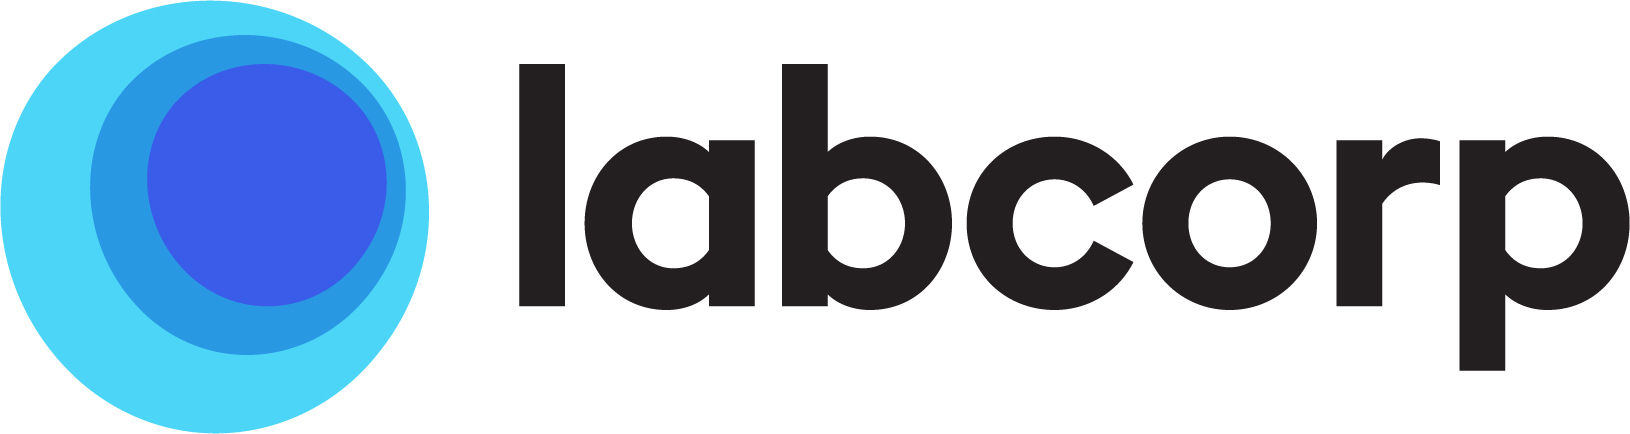 LabCorp Benefits Employee Health Benefits MDLIVE Healthcare